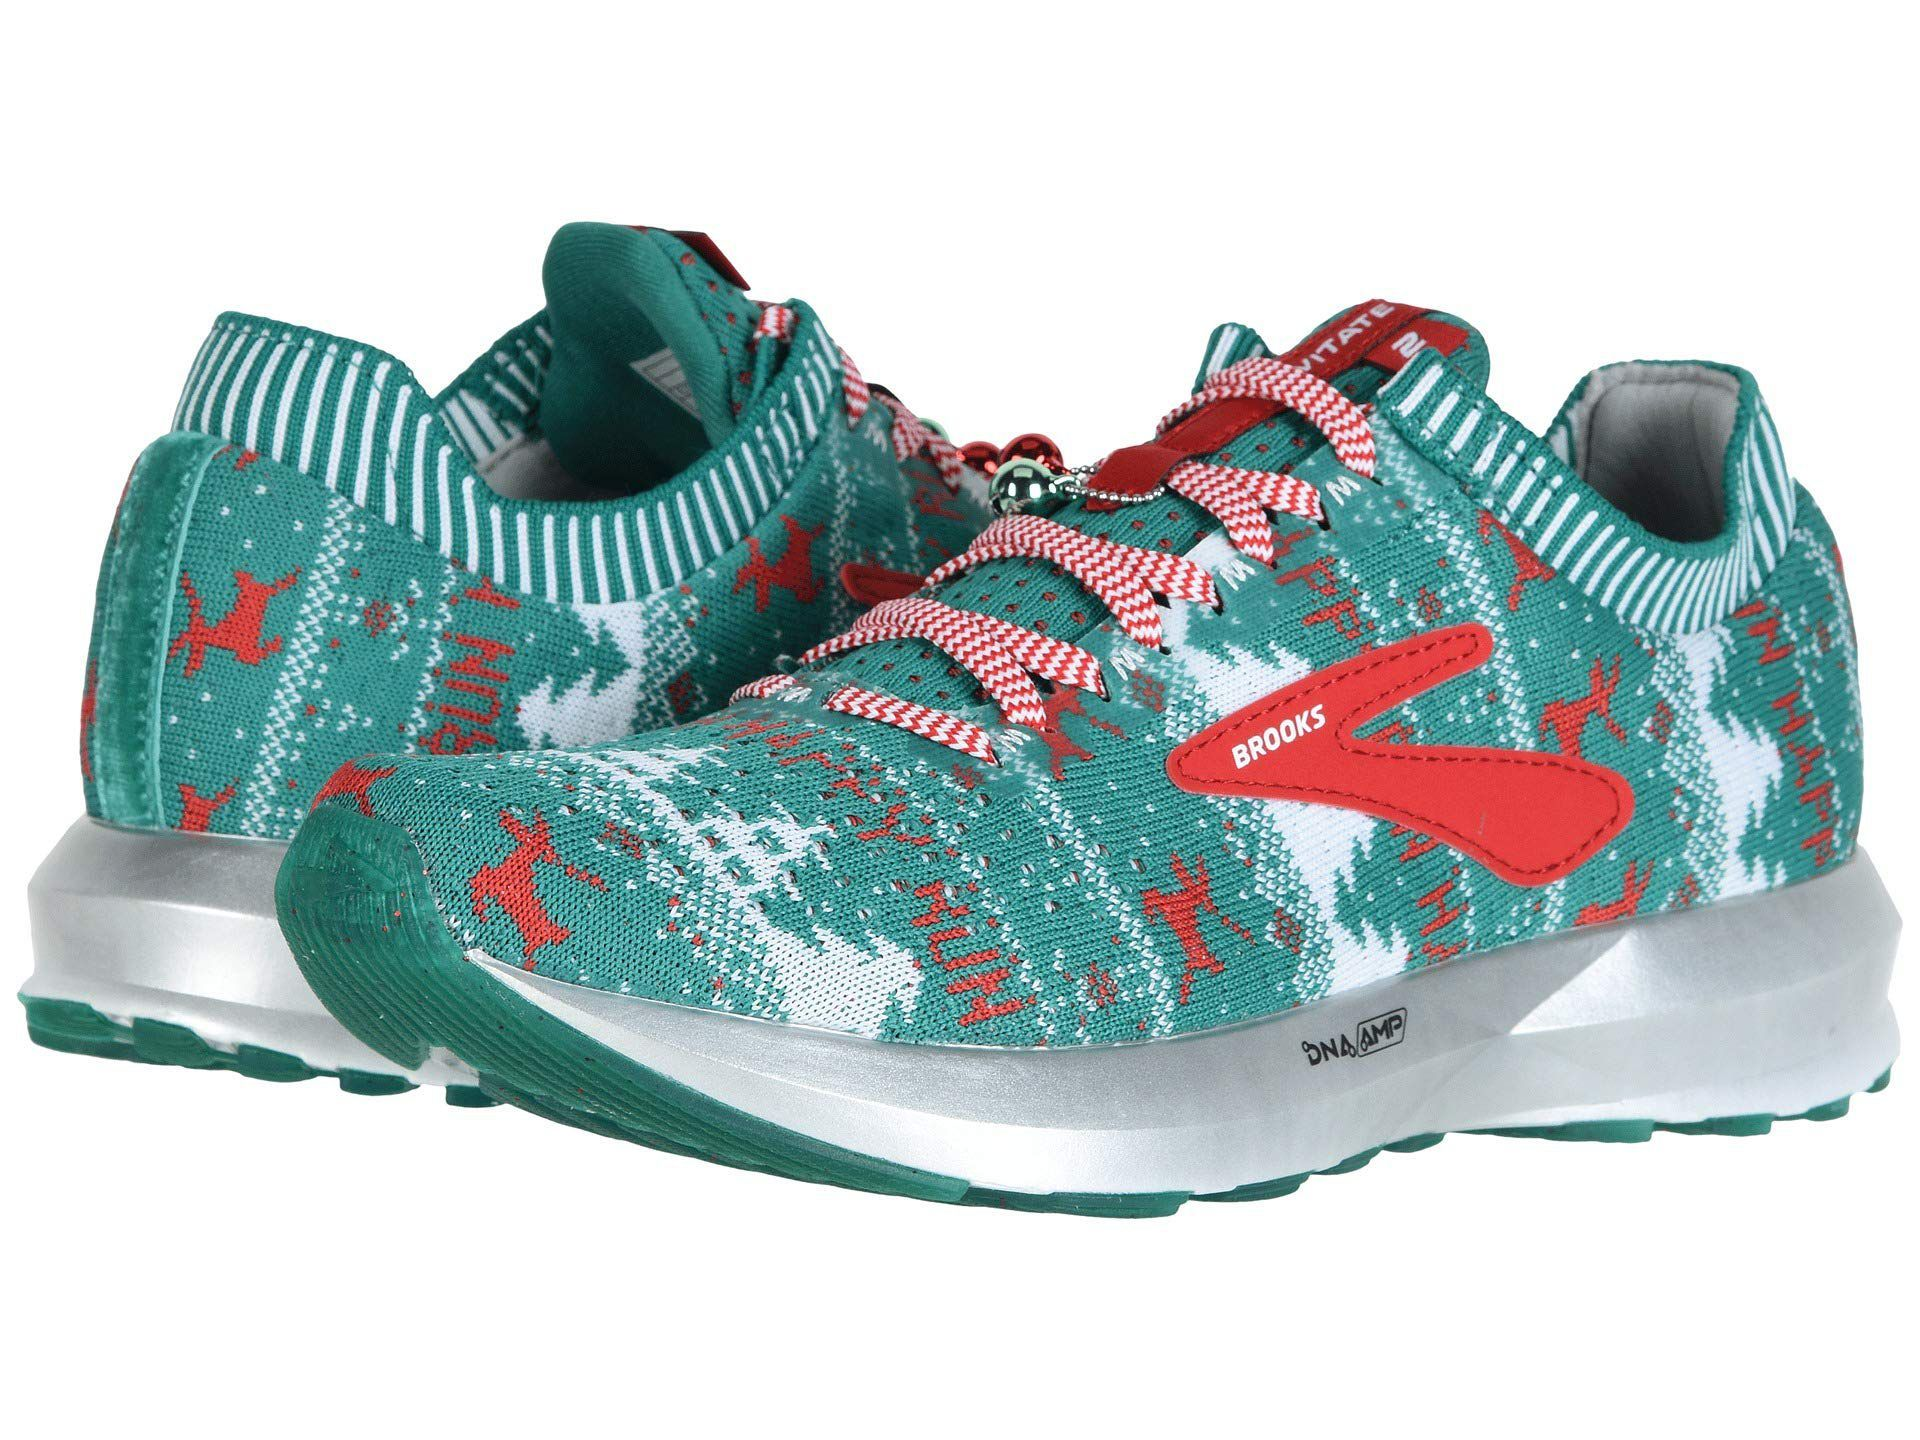 Christmas Shoe.Brooks Christmas Shoes Are Like An Ugly Sweater For Your Feet